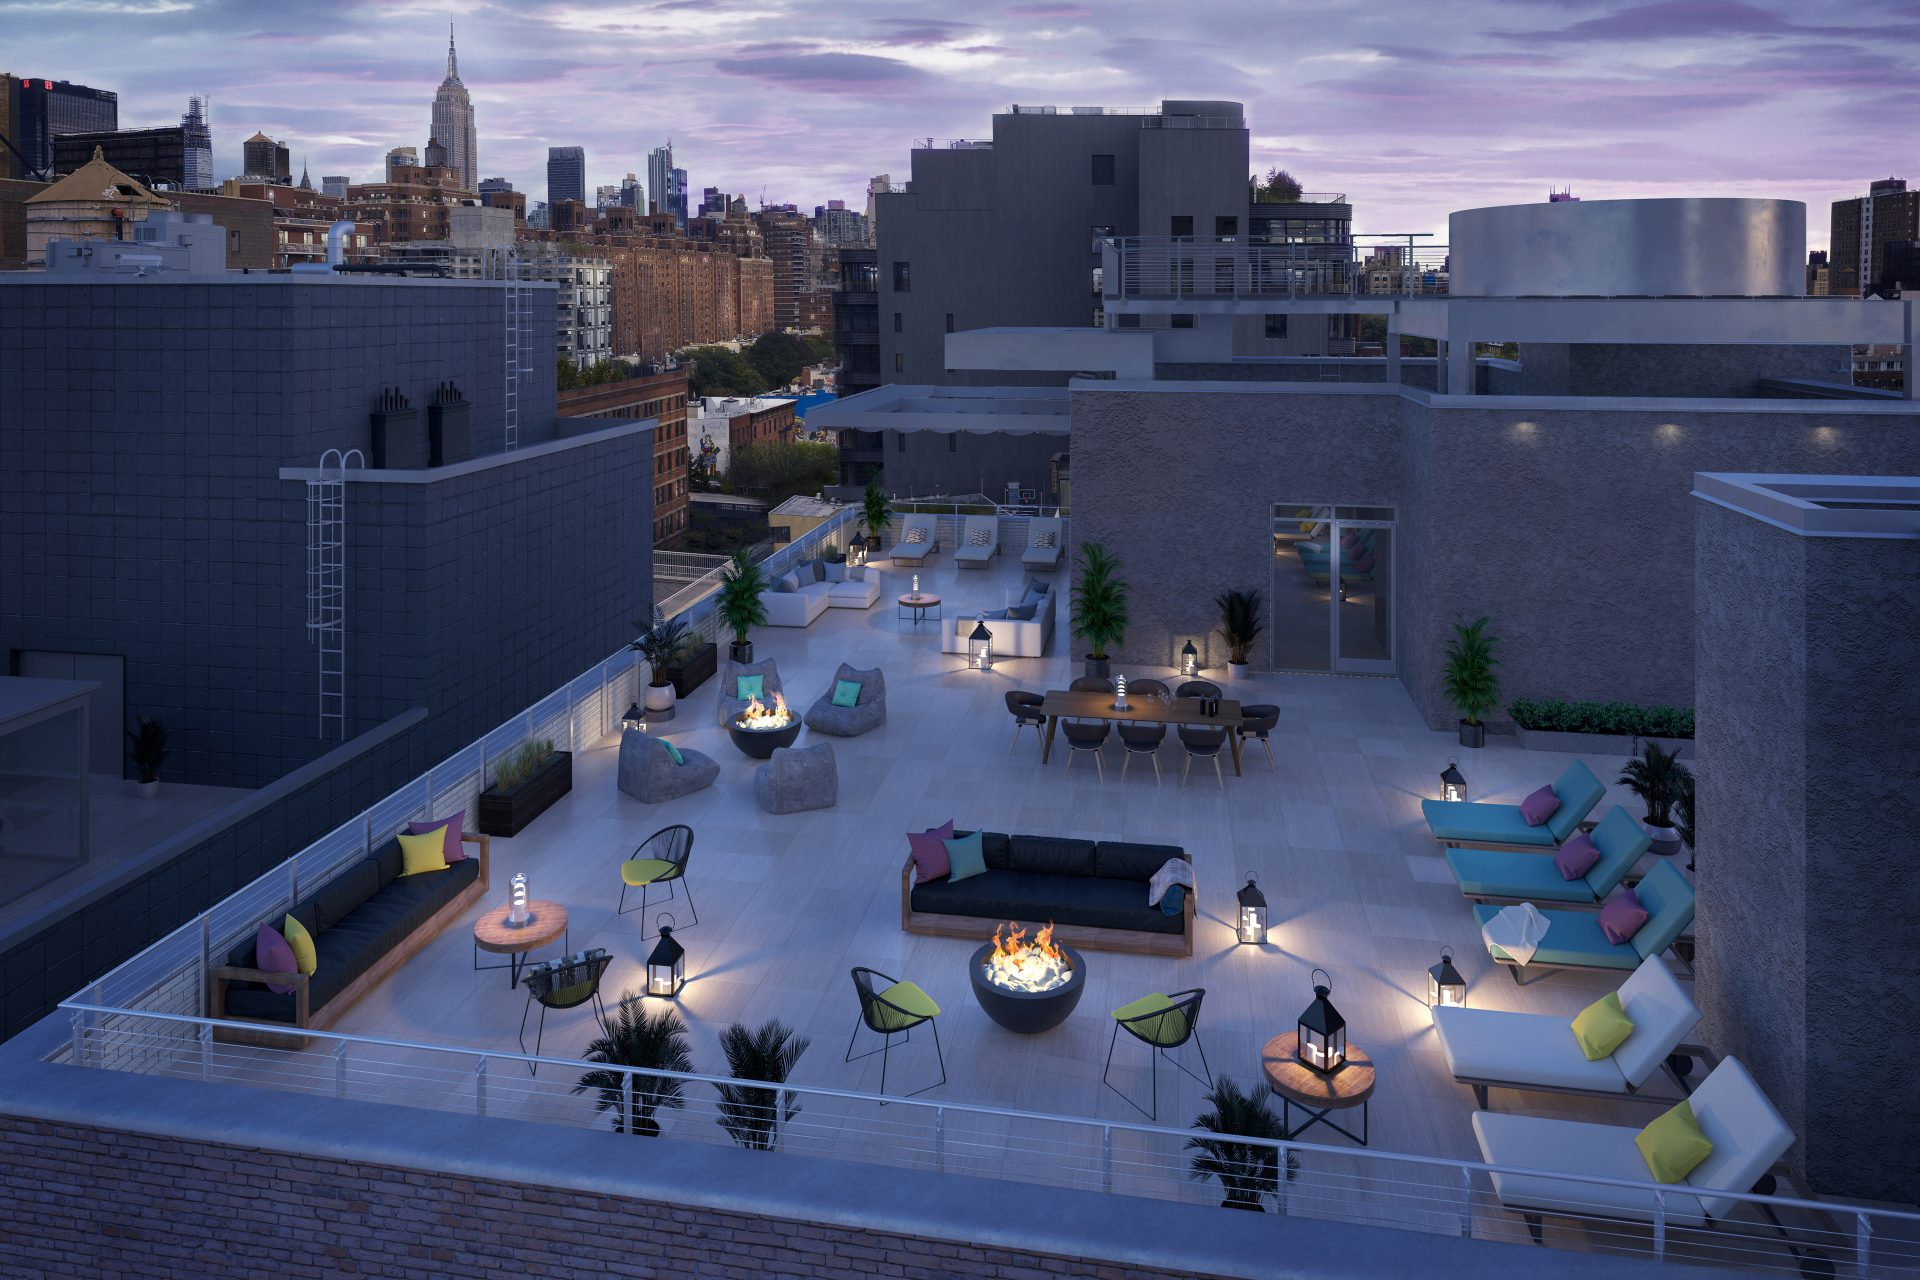 Proposed roof terrace amenity at 541 West 21st Street